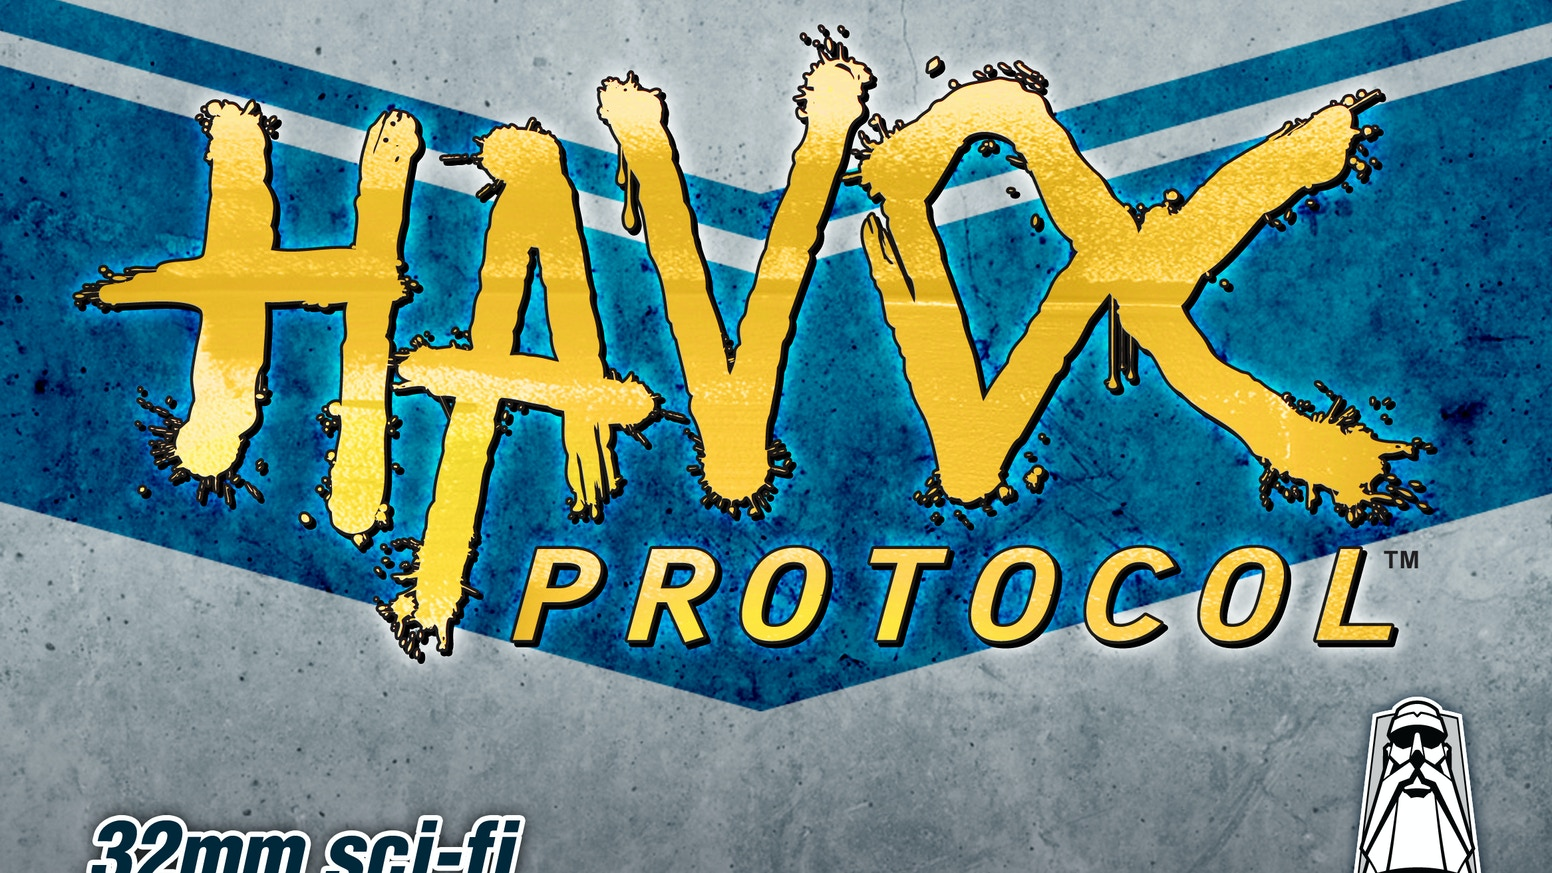 Help Effigy raise funds for the sculpting, production, and painting of the next wave of miniatures for its sci-fi line, Havoc Protocol.